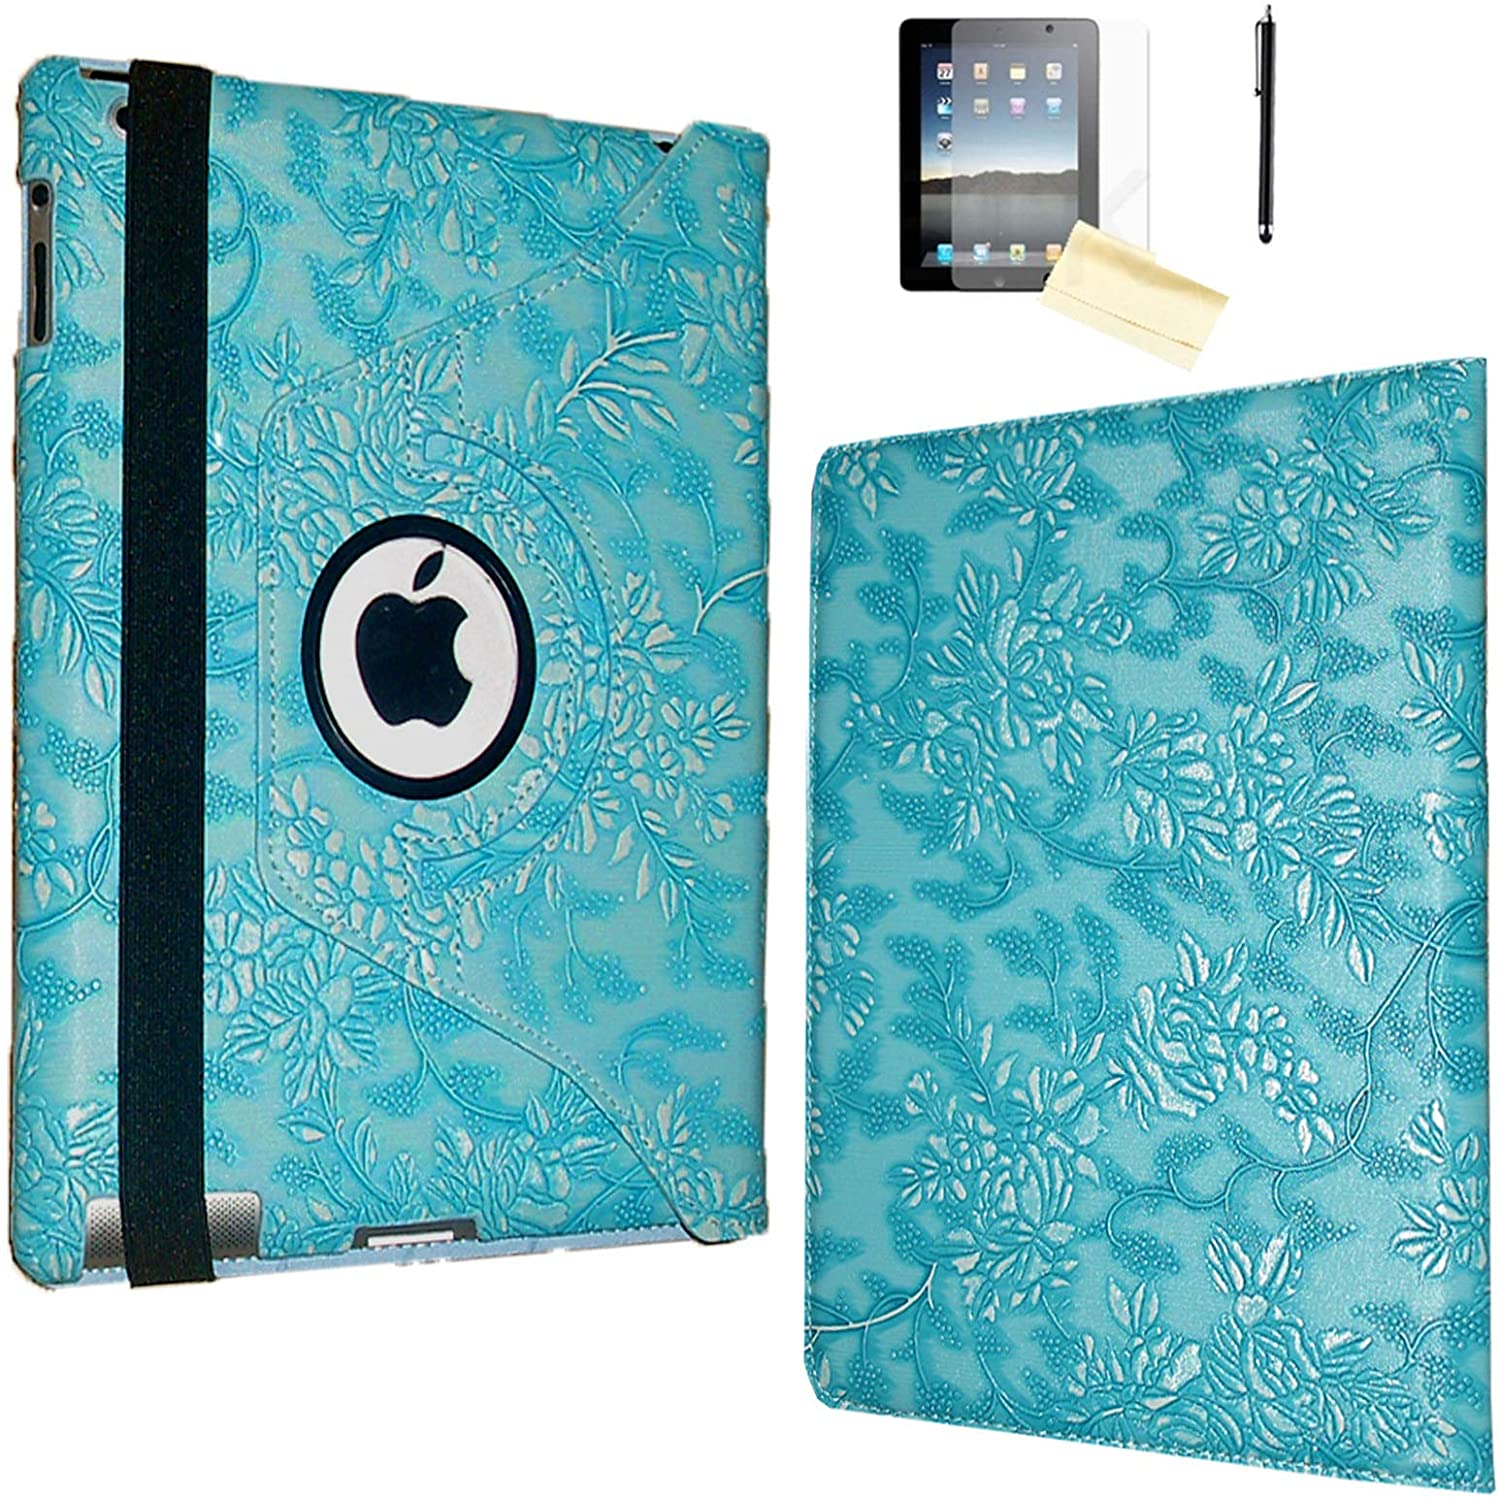 iPad 2 Case, iPad 3 Case, iPad 4 Case, JYtrend Rotating Stand Smart Case Cover Magnetic Auto Wake Up/Sleep for A1395 A1396 A1397 A1403 A1416 A1430 A1458 A1459 A1460 (Embossed Blue Flower)